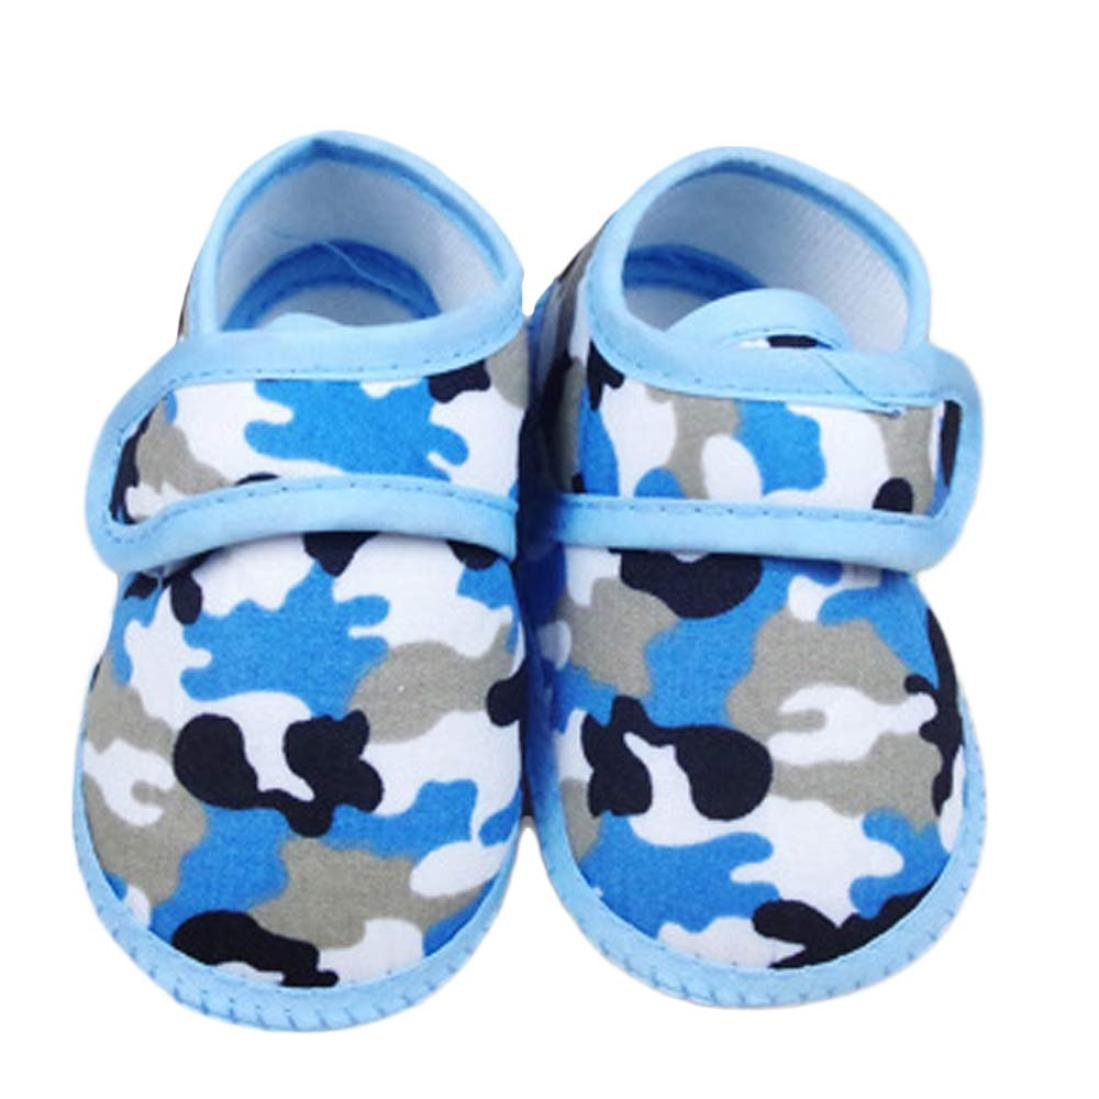 Infant Canvas Sneaker, Iusun Newborn Baby Soft Sole Prewalker Crib Shoes Casual Shoes